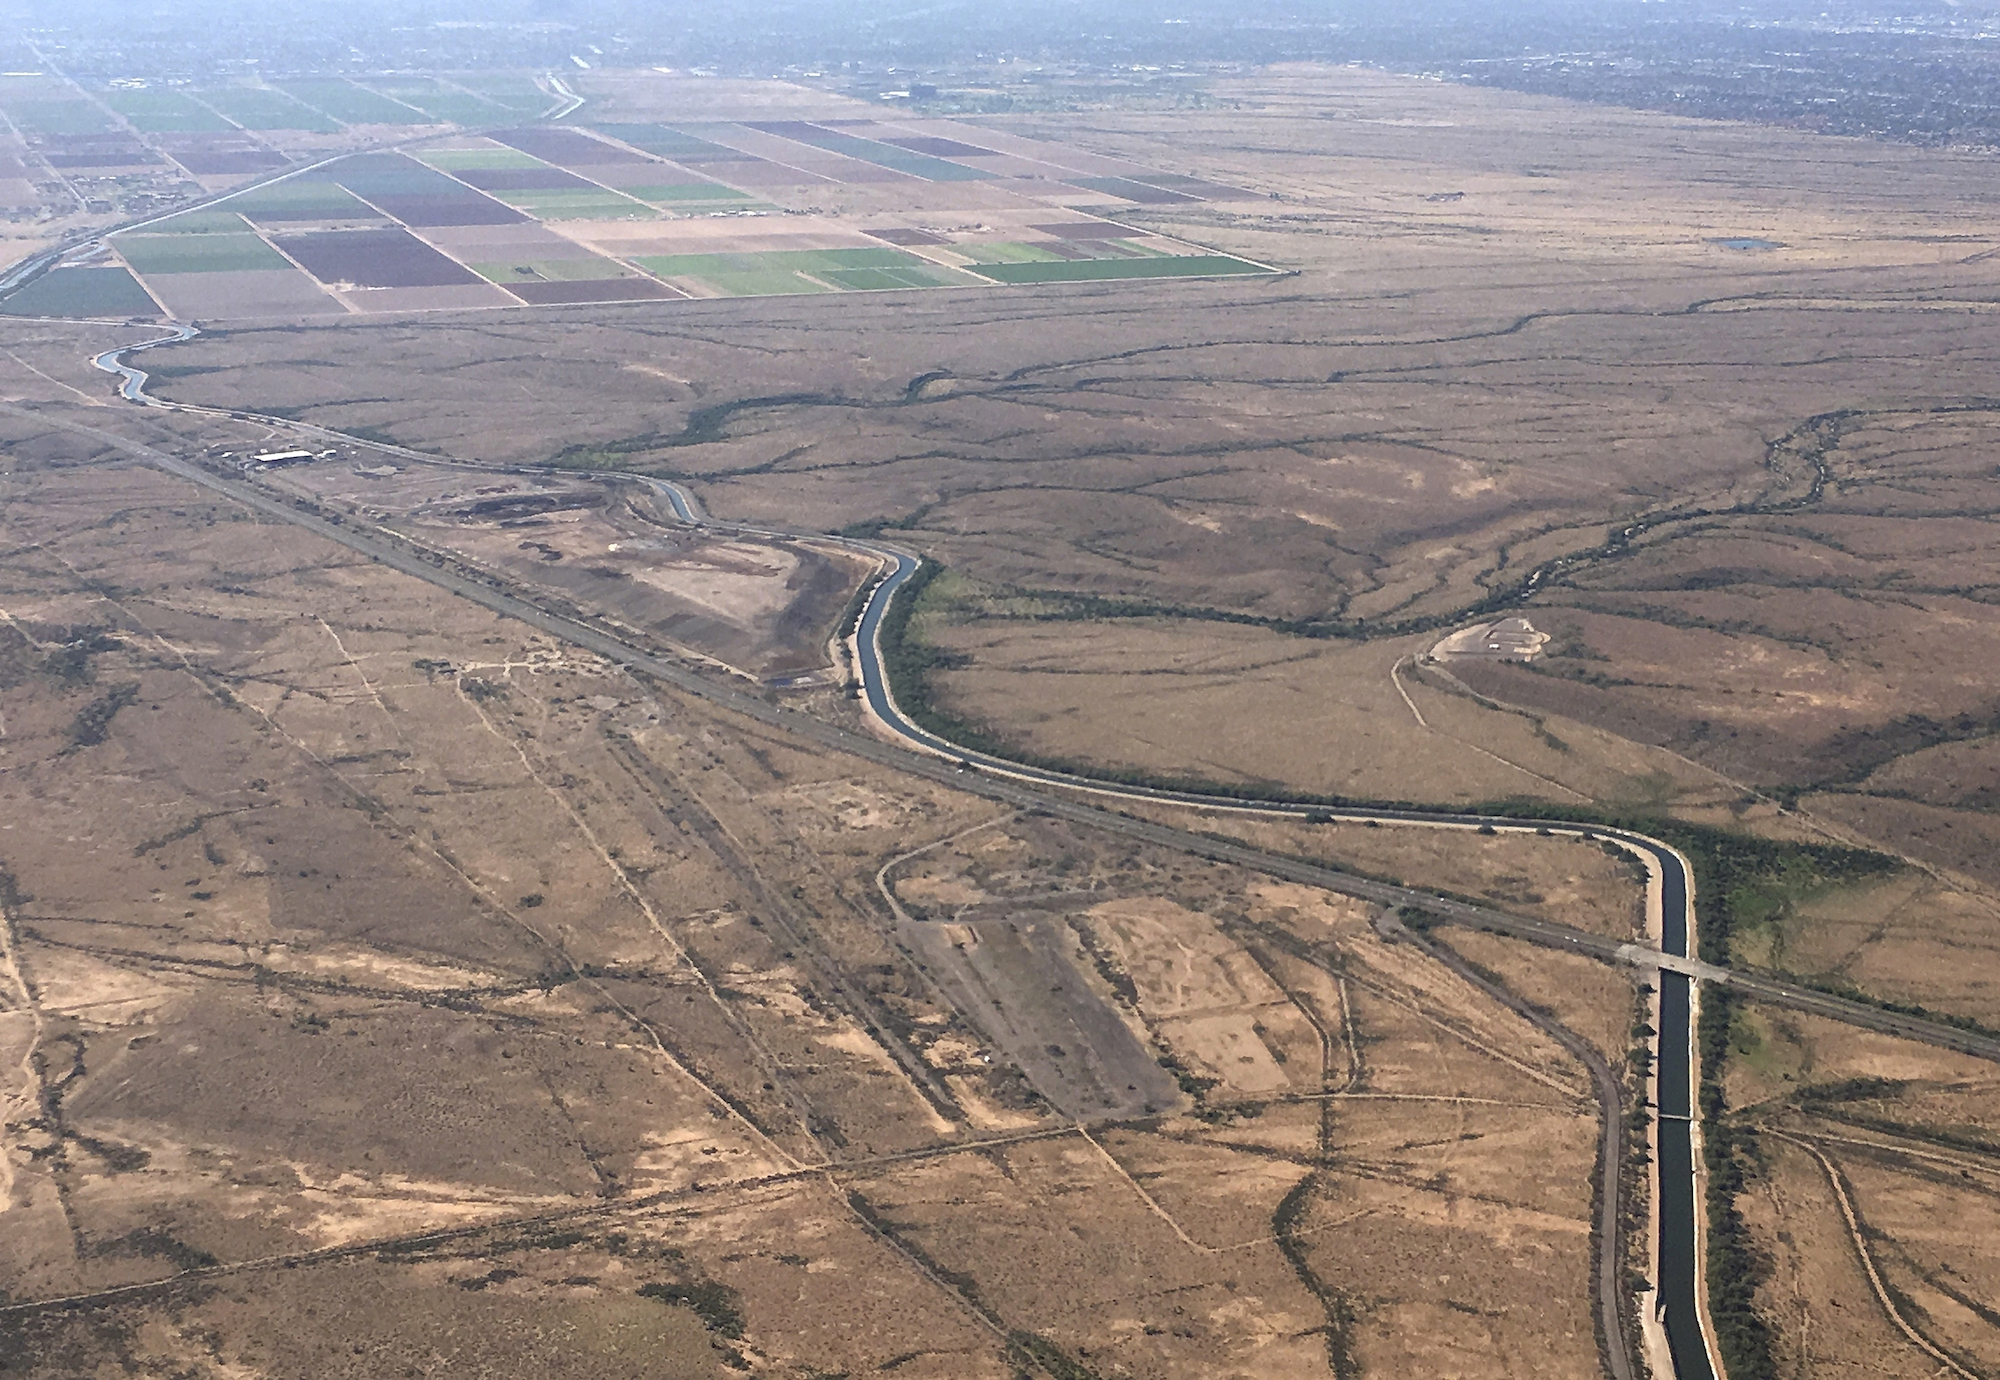 an aerial view of a winding canal through brown, dry hills